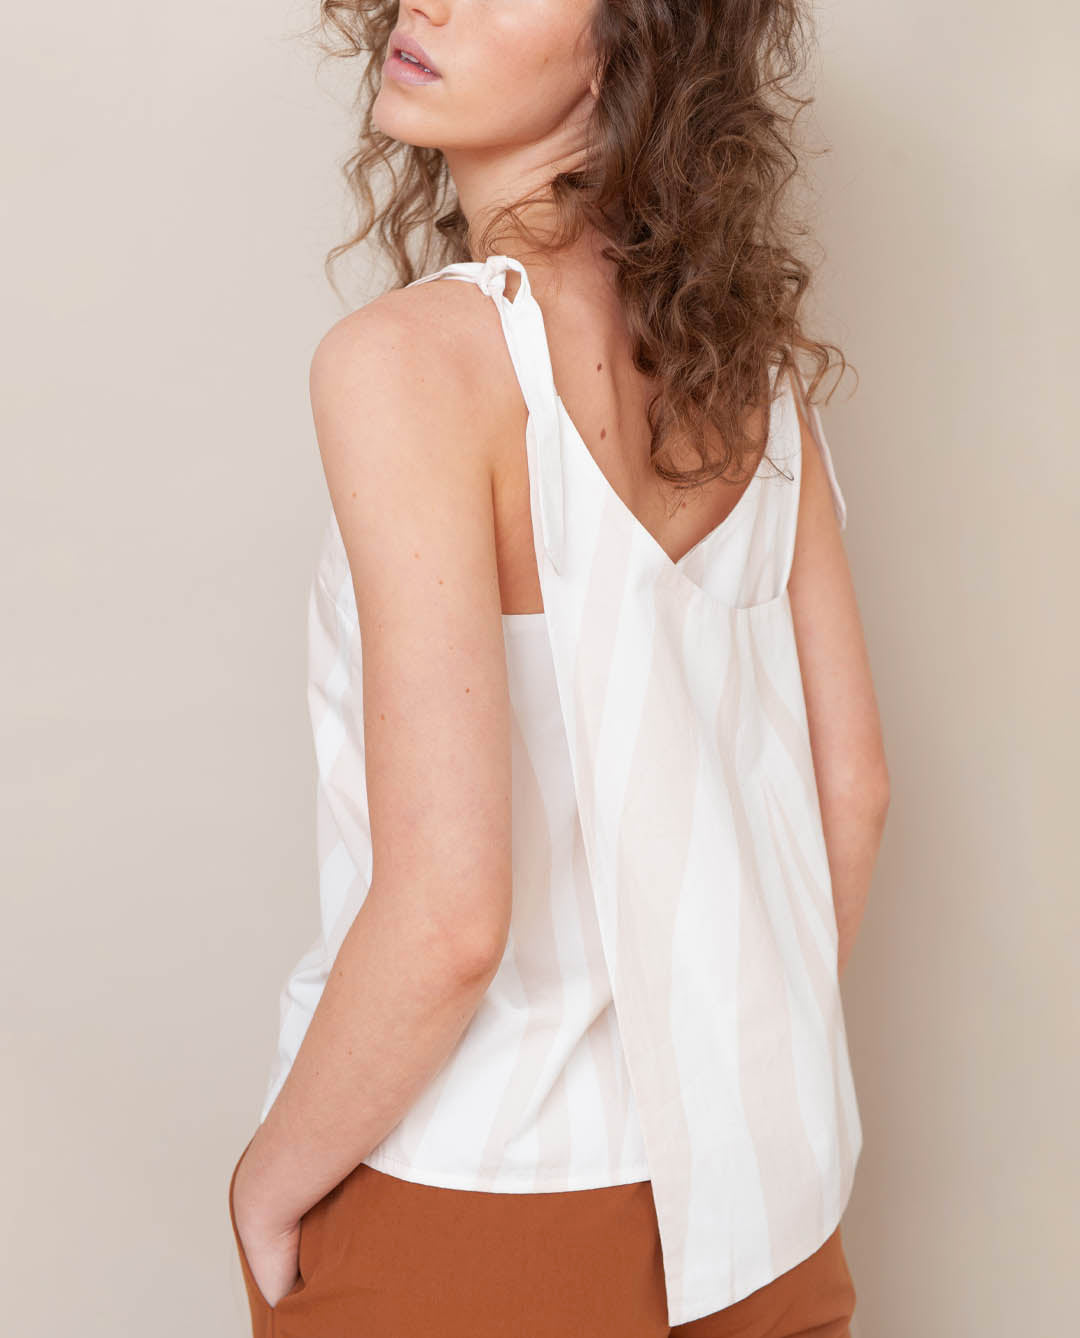 Emma-Paige Organic Cotton Wrapped Top In Off White & Bone